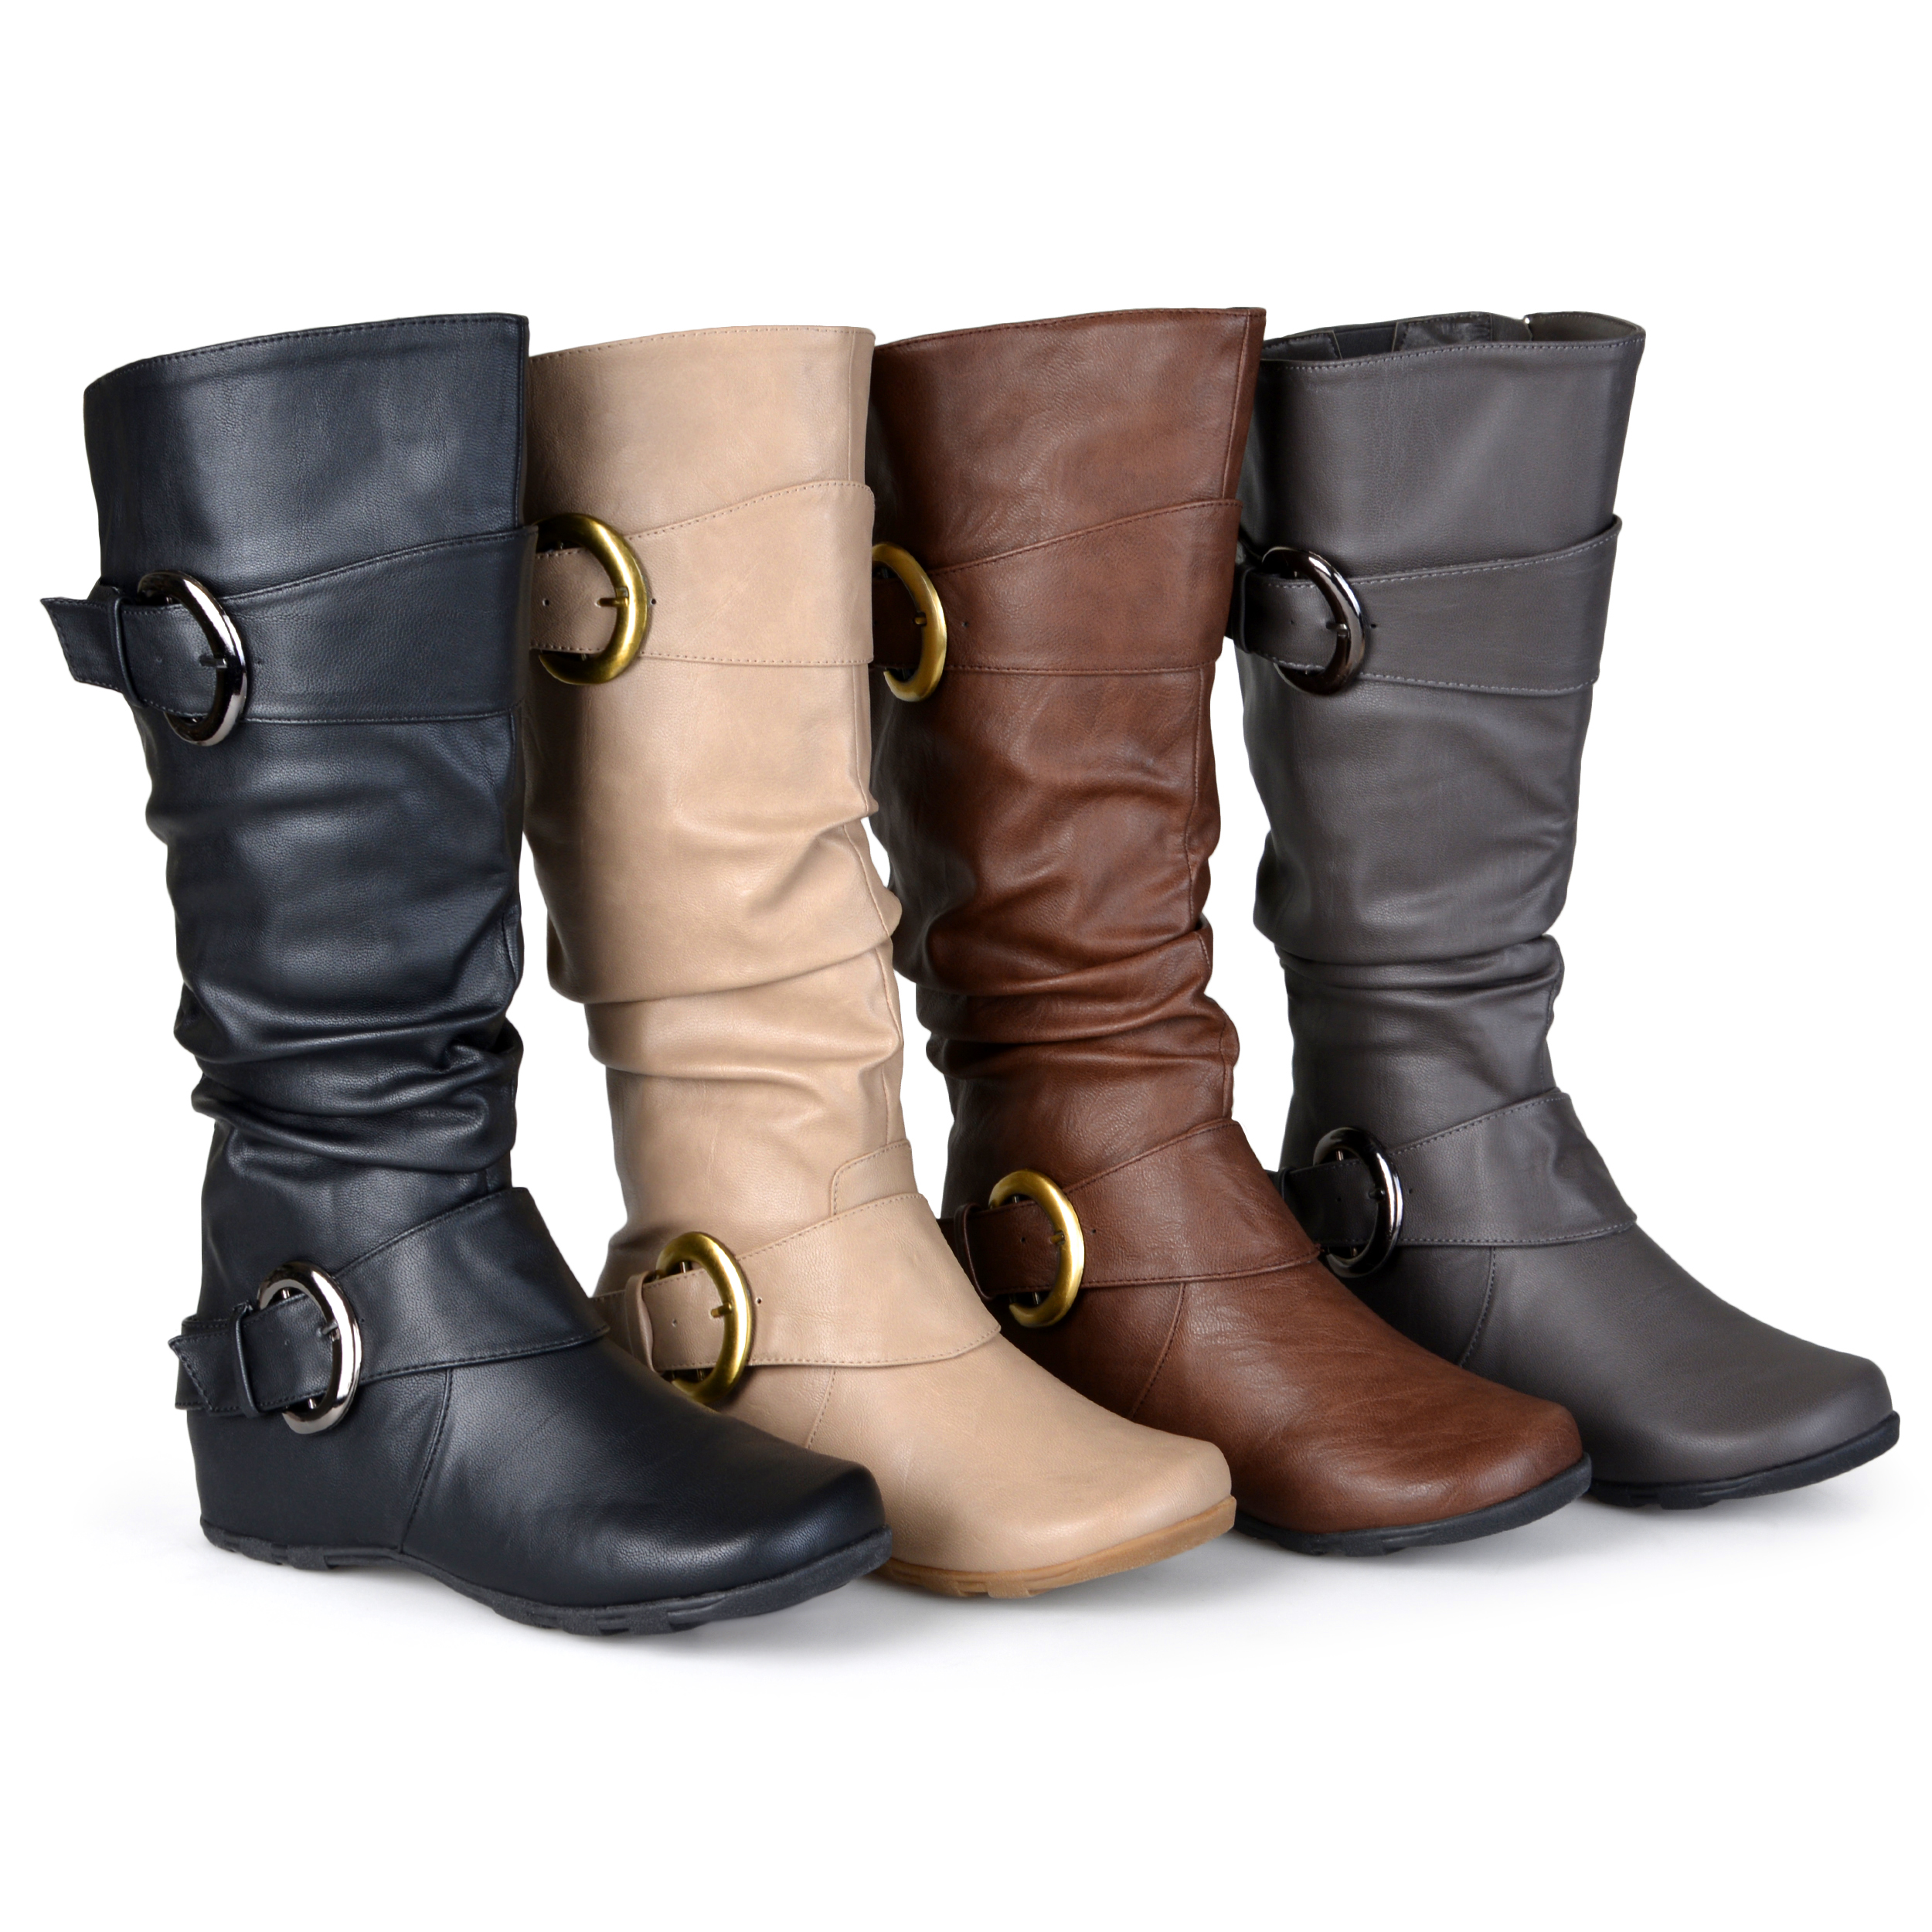 brinley co womens wide calf slouchy buckle detail boots